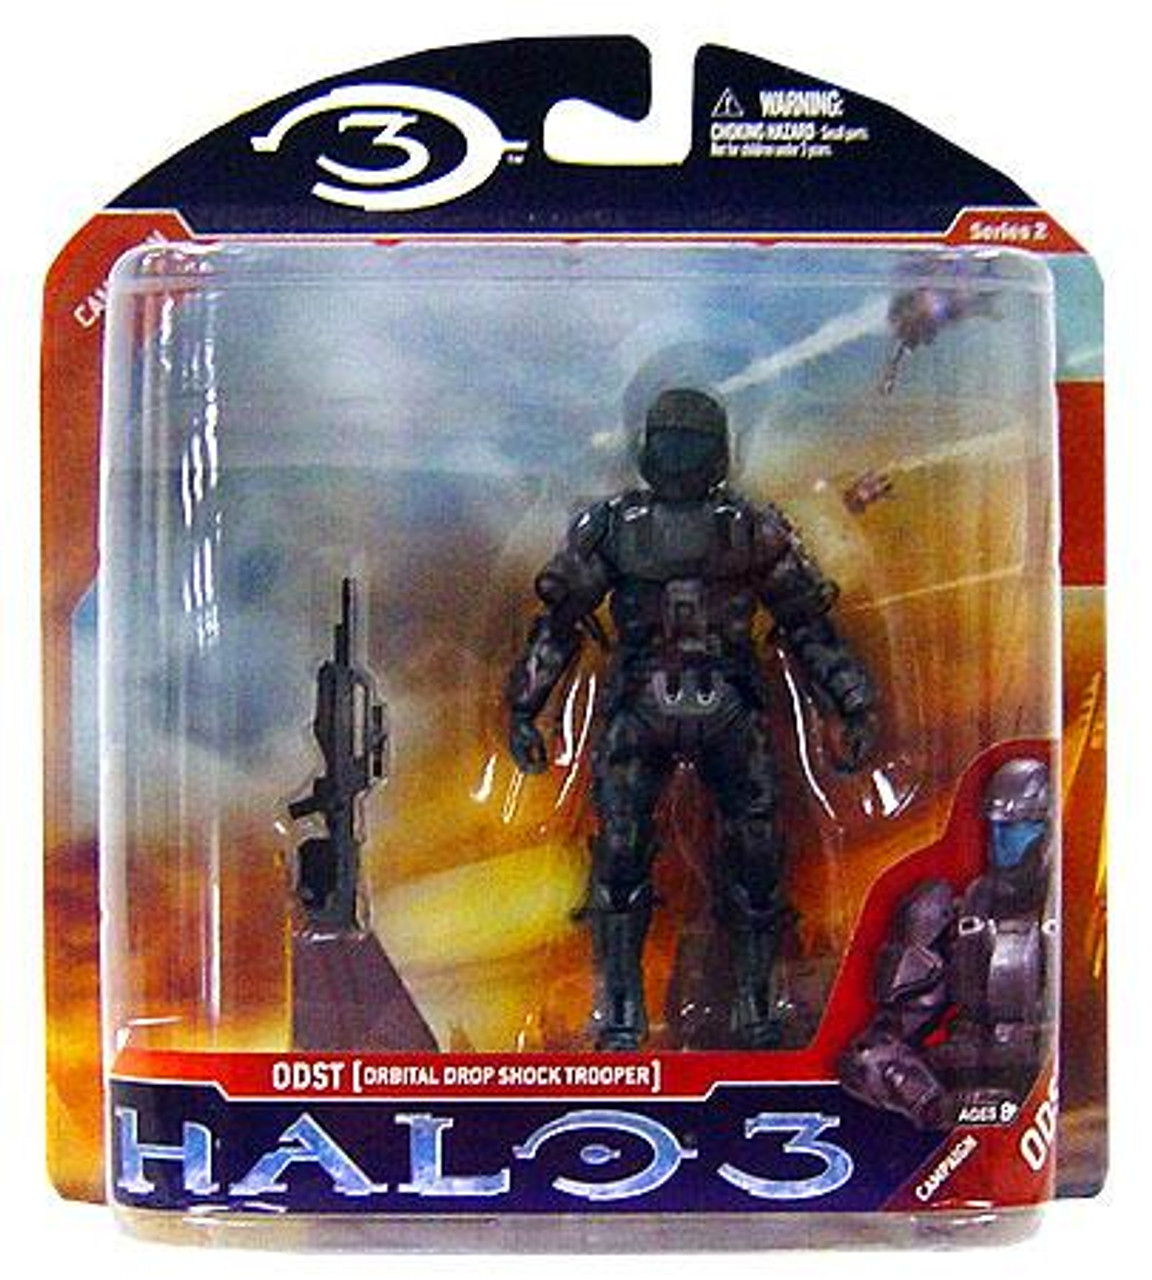 McFarlane Toys Halo 3 Series 2 ODST Orbital Drop Shock Trooper Action Figure